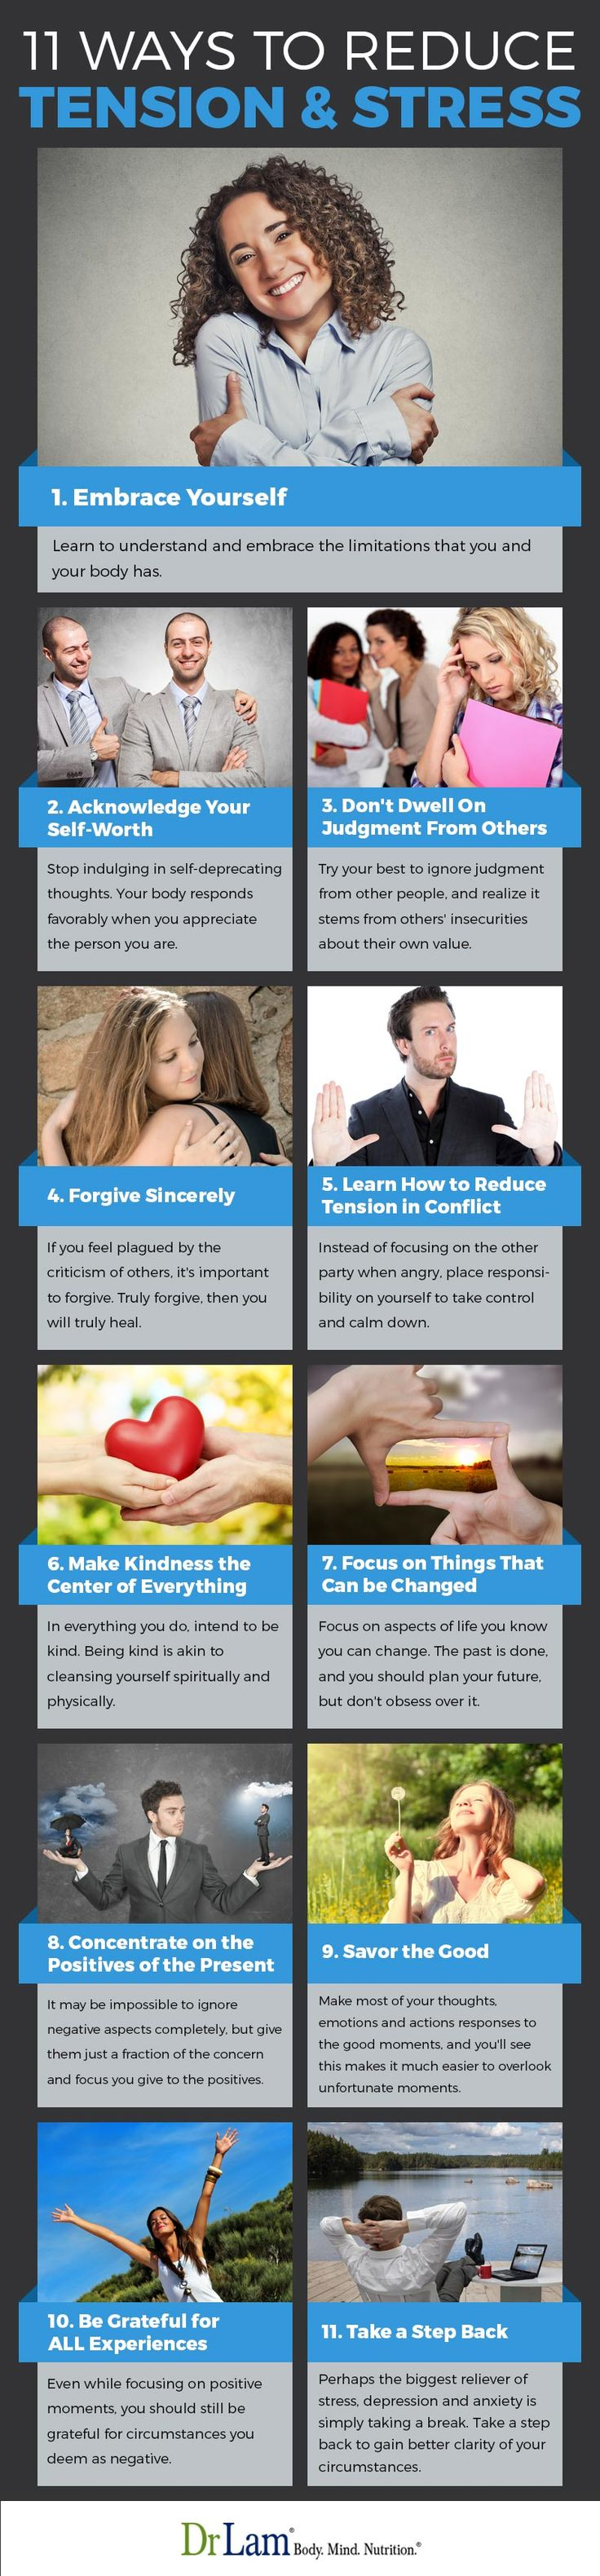 Check out this easy to understand infographic on how to reduce tension and stress